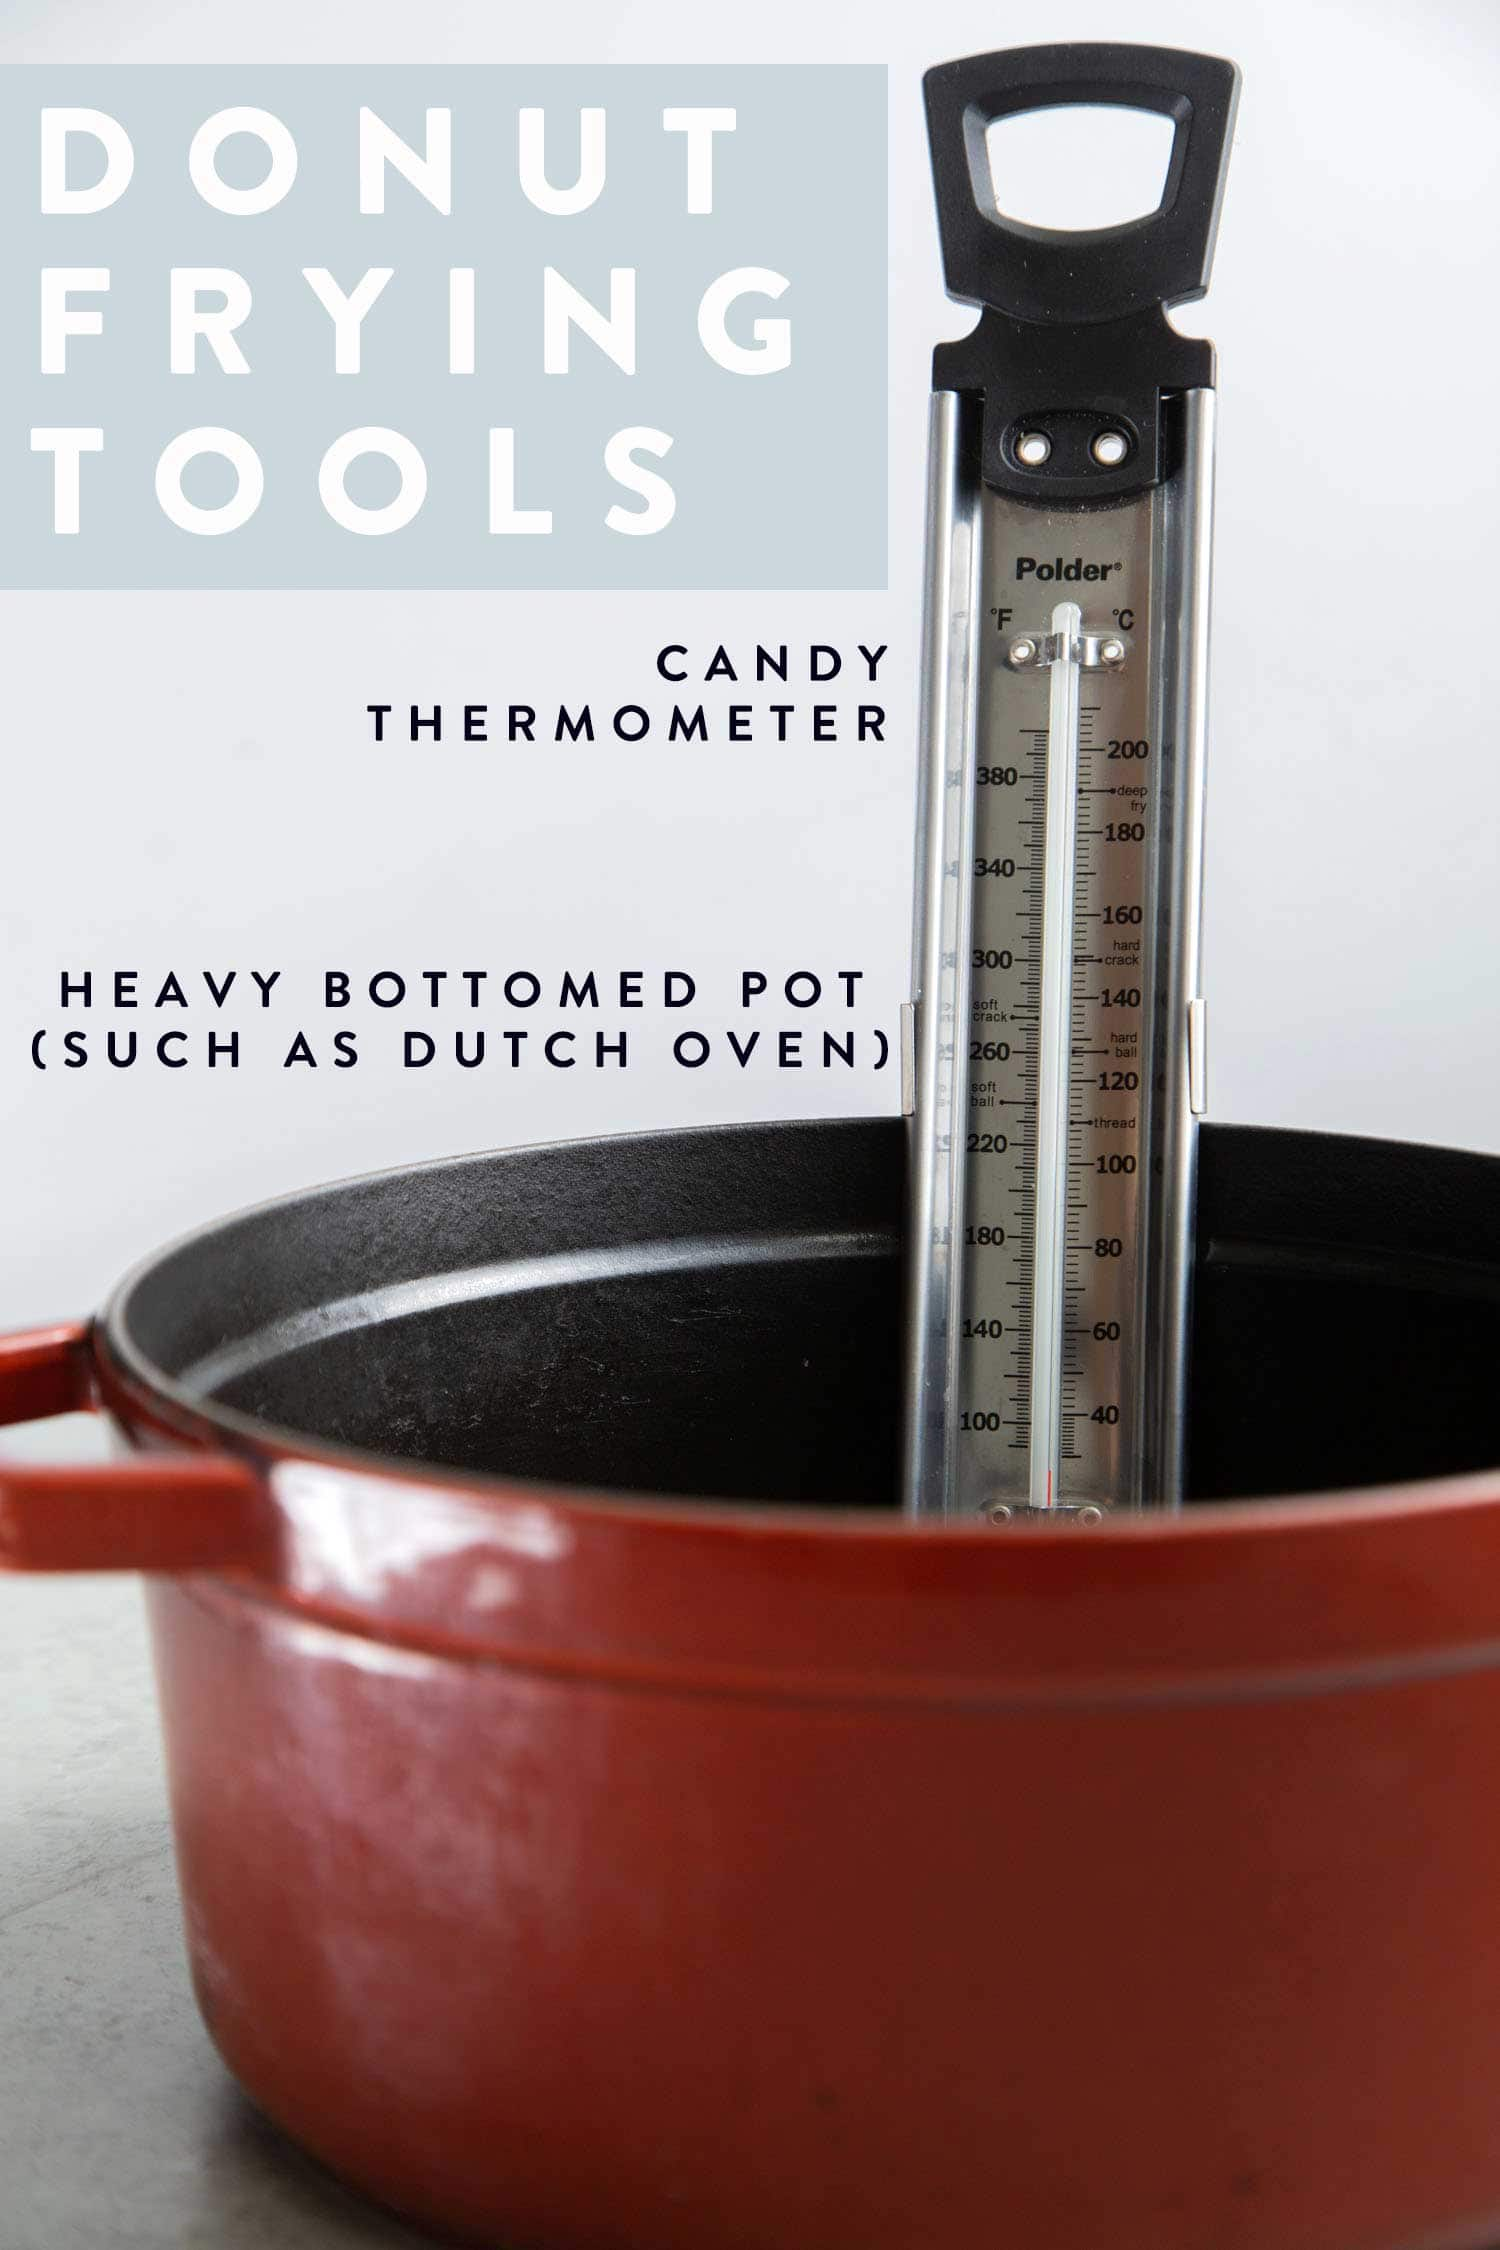 Donut Frying Tools. You need a candy thermometer (or deep fry thermometer) and a heavy bottomed pot.